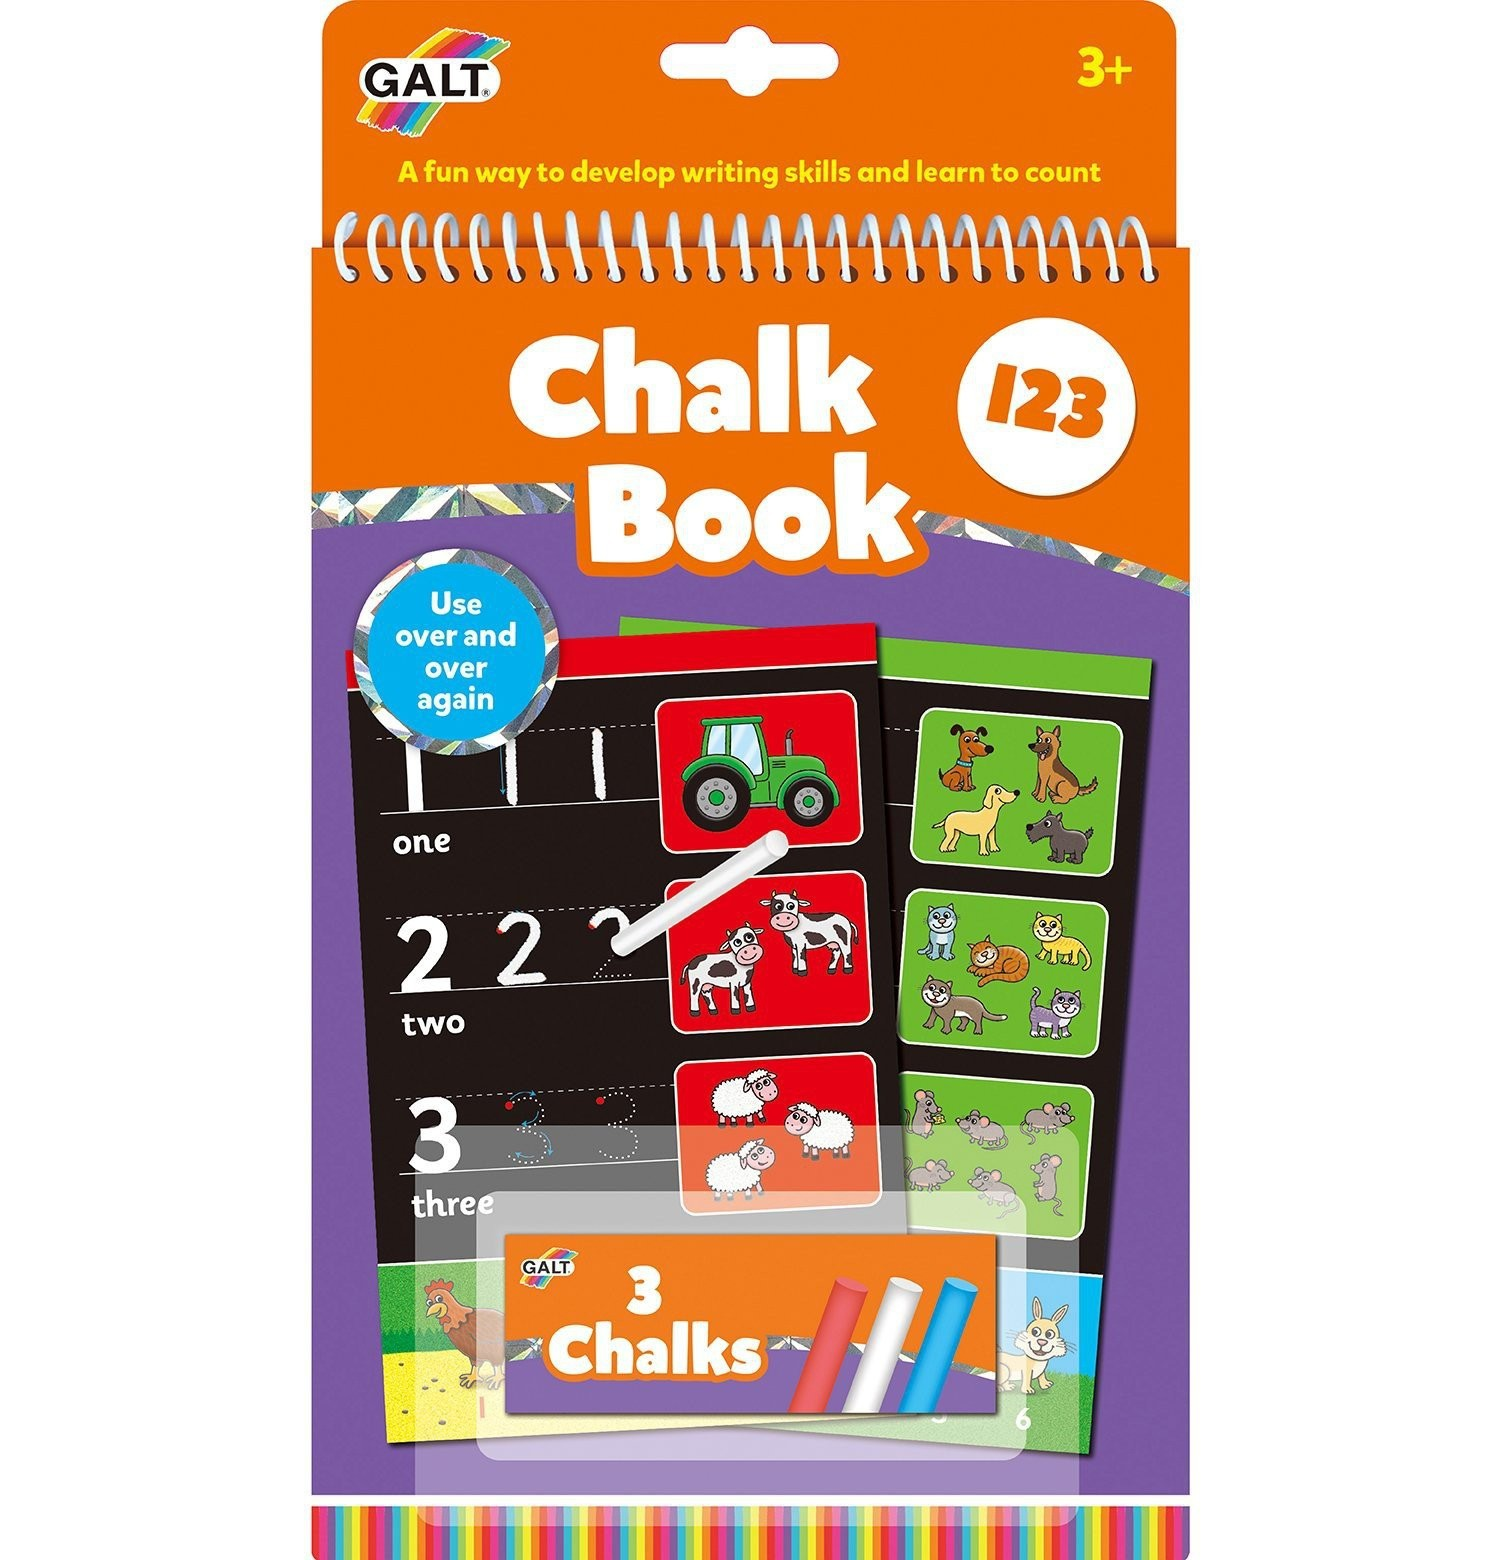 Galt Chalk Book 123